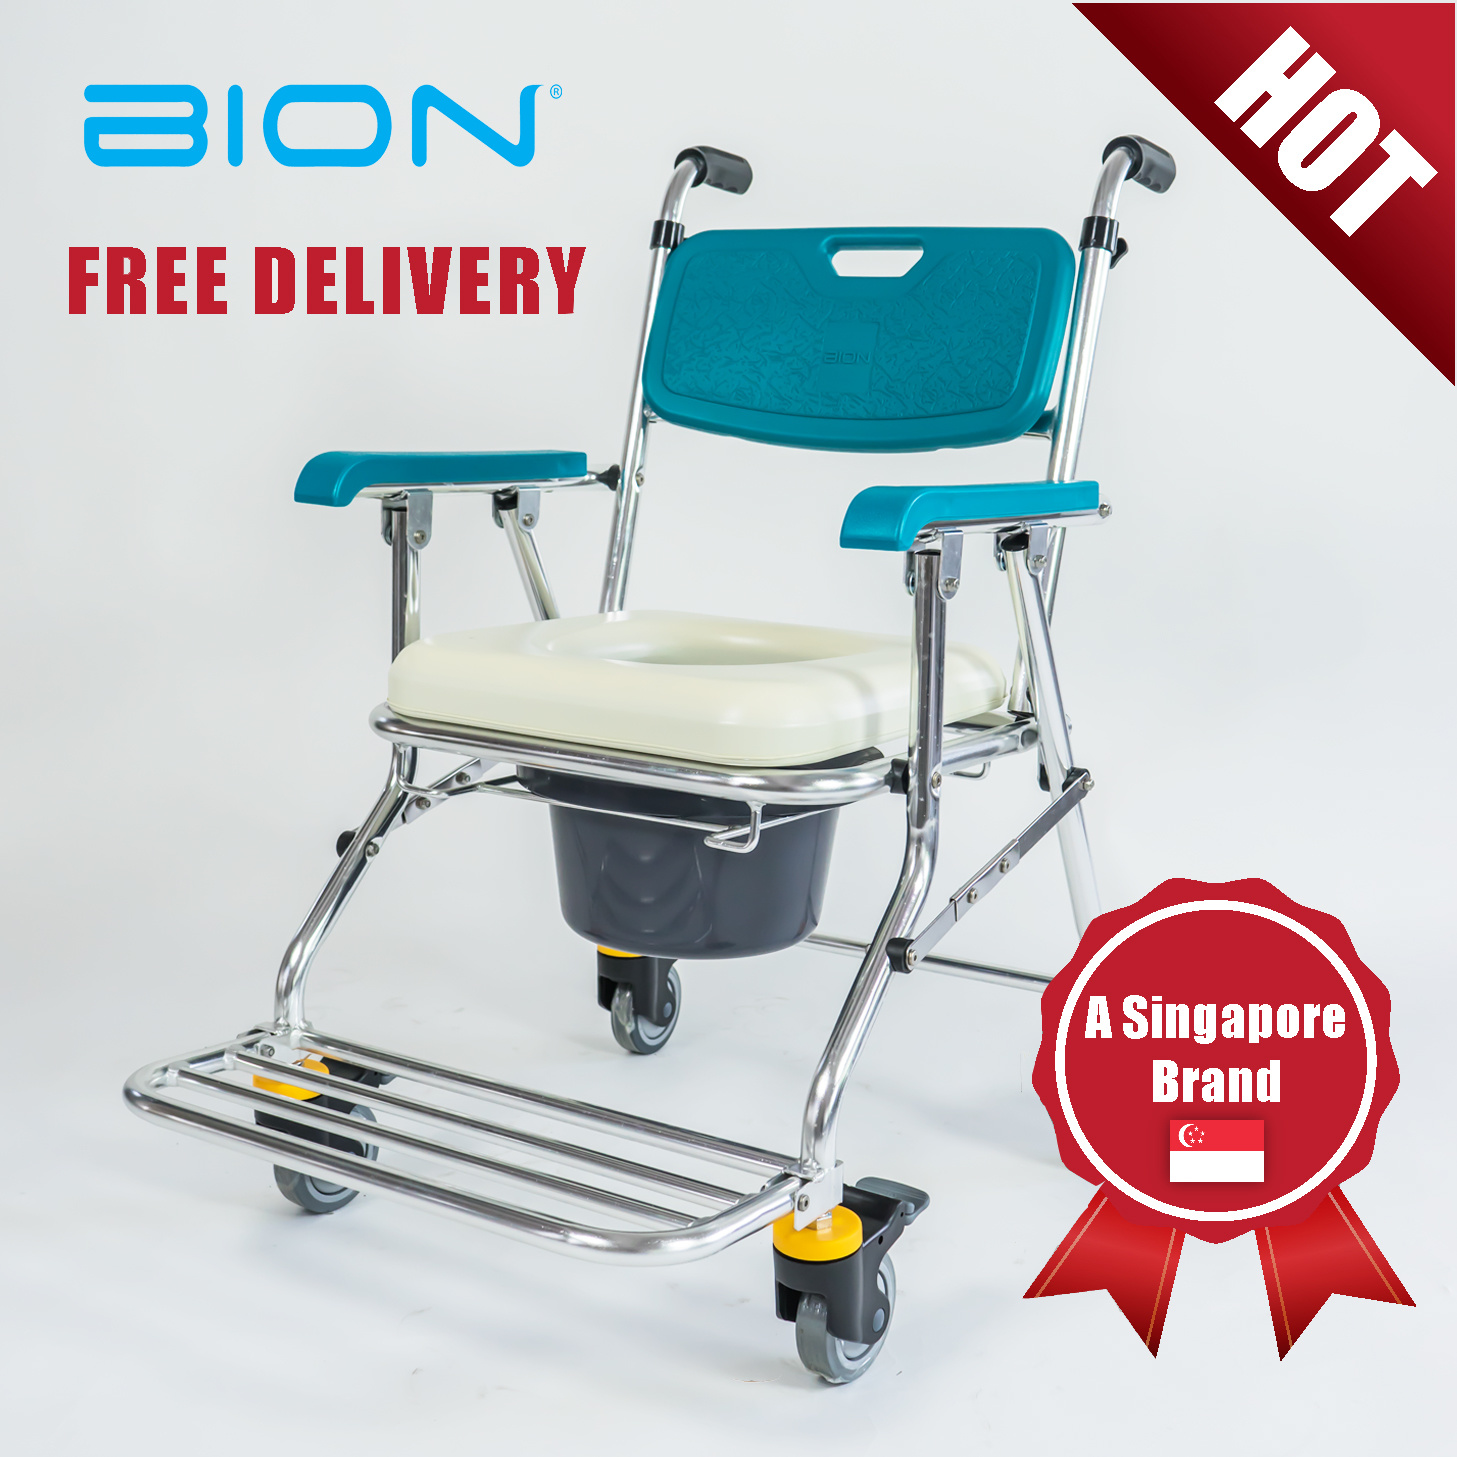 Bionbion Commode Chair 208